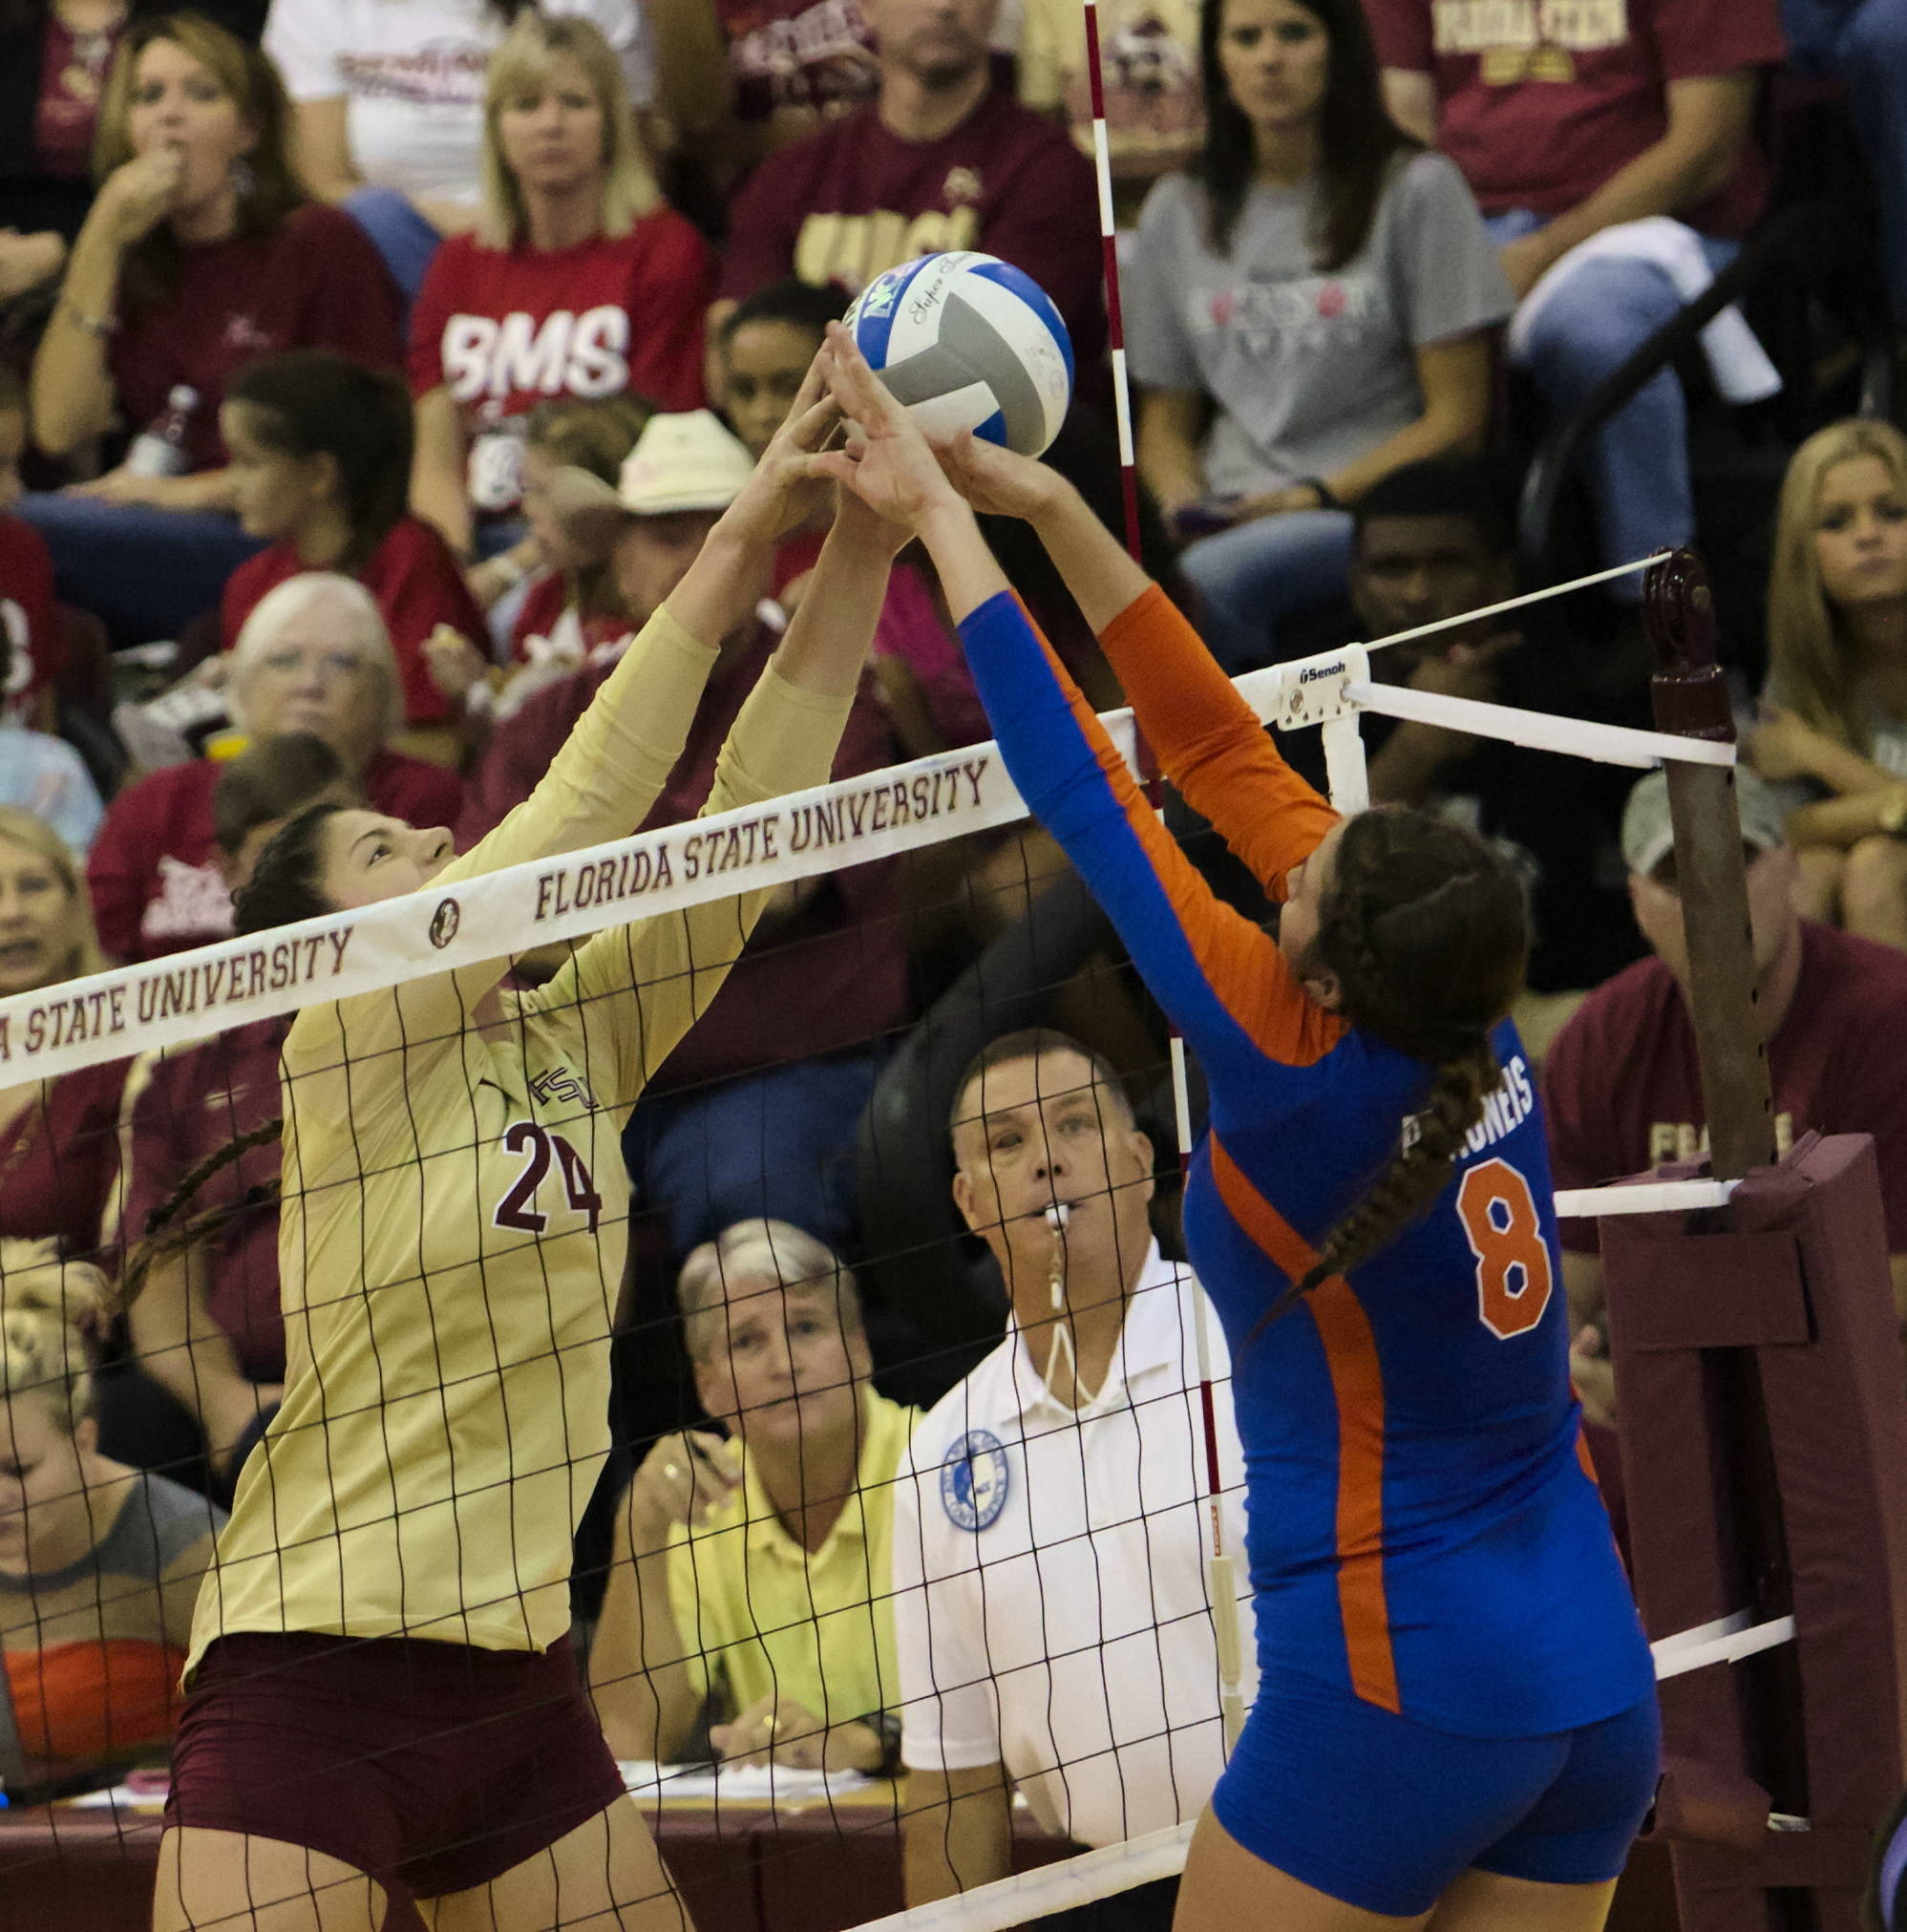 Olivera Medic (24), FSU vs Florida, 10/24/12 (Photo by Steve Musco)